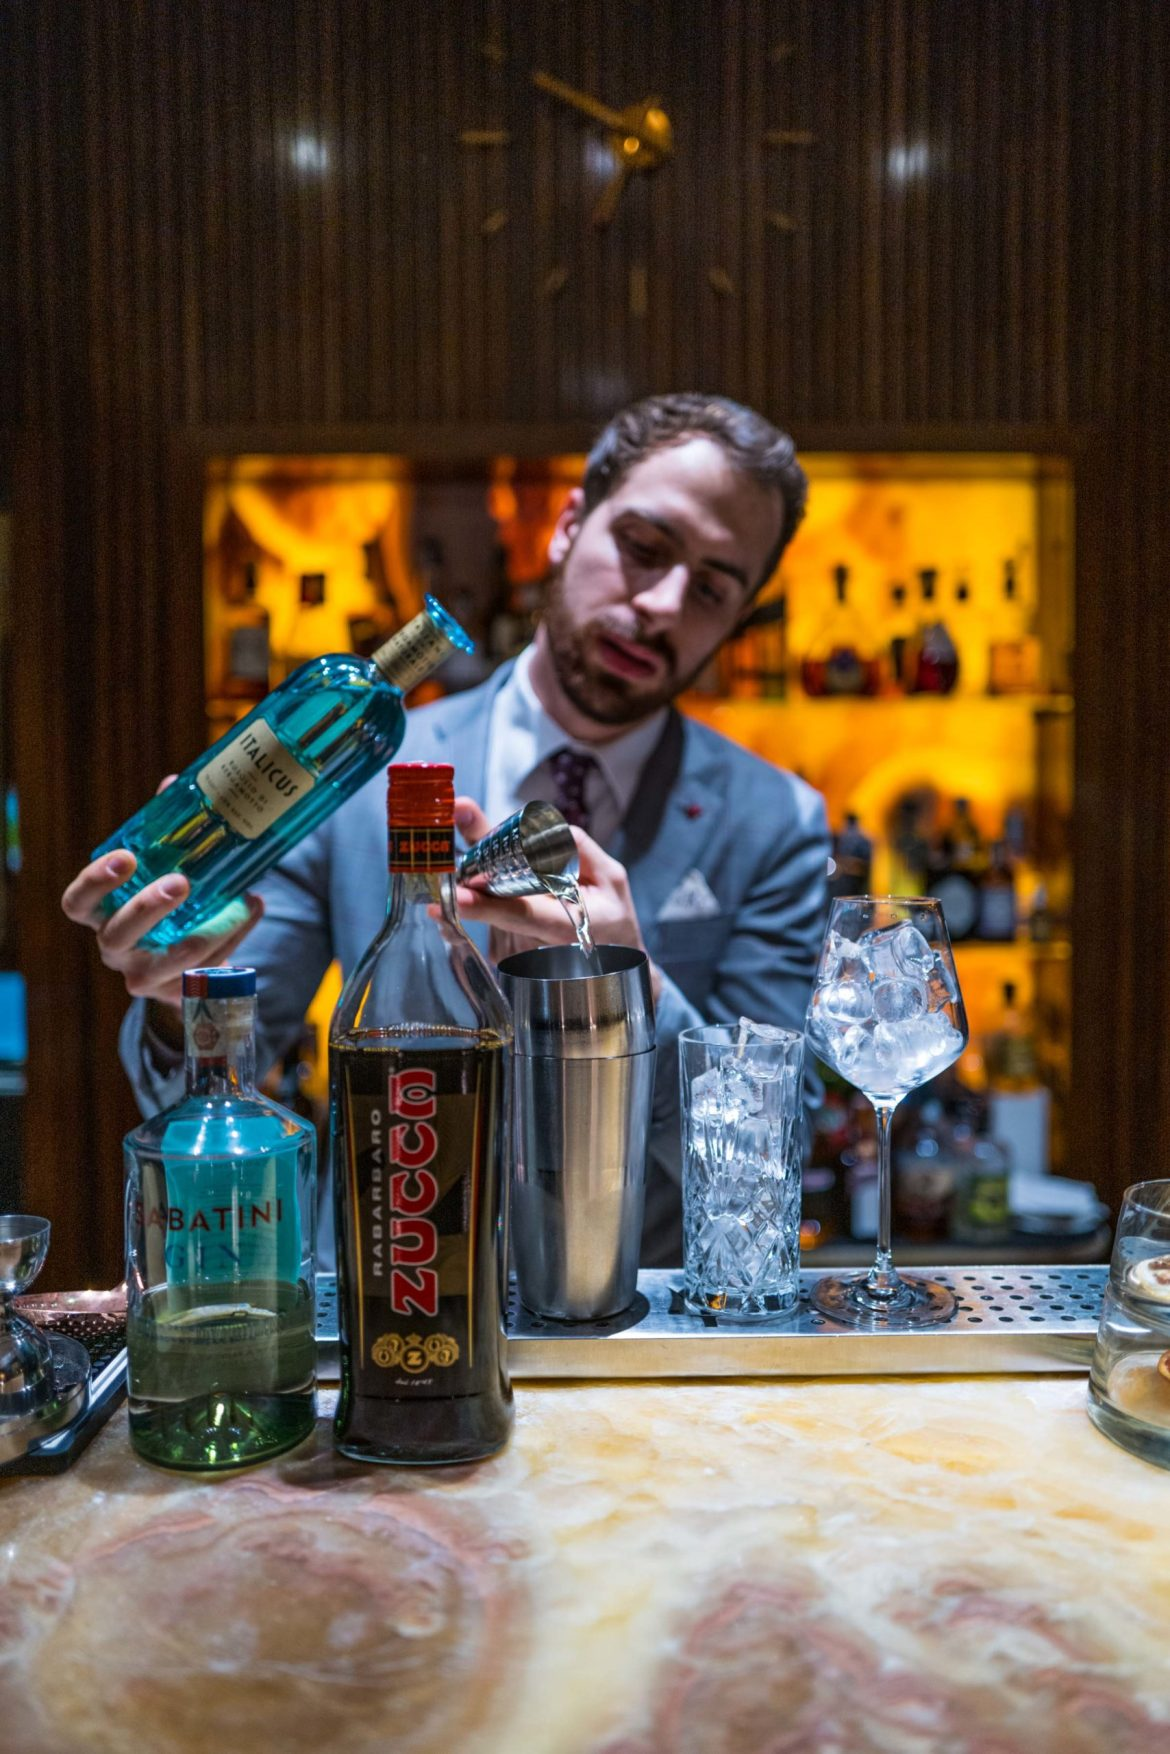 JK Cafe at JK Place Roma hotel in Rome, The Taste Edit #hotel #rome #travel #cocktail #bar